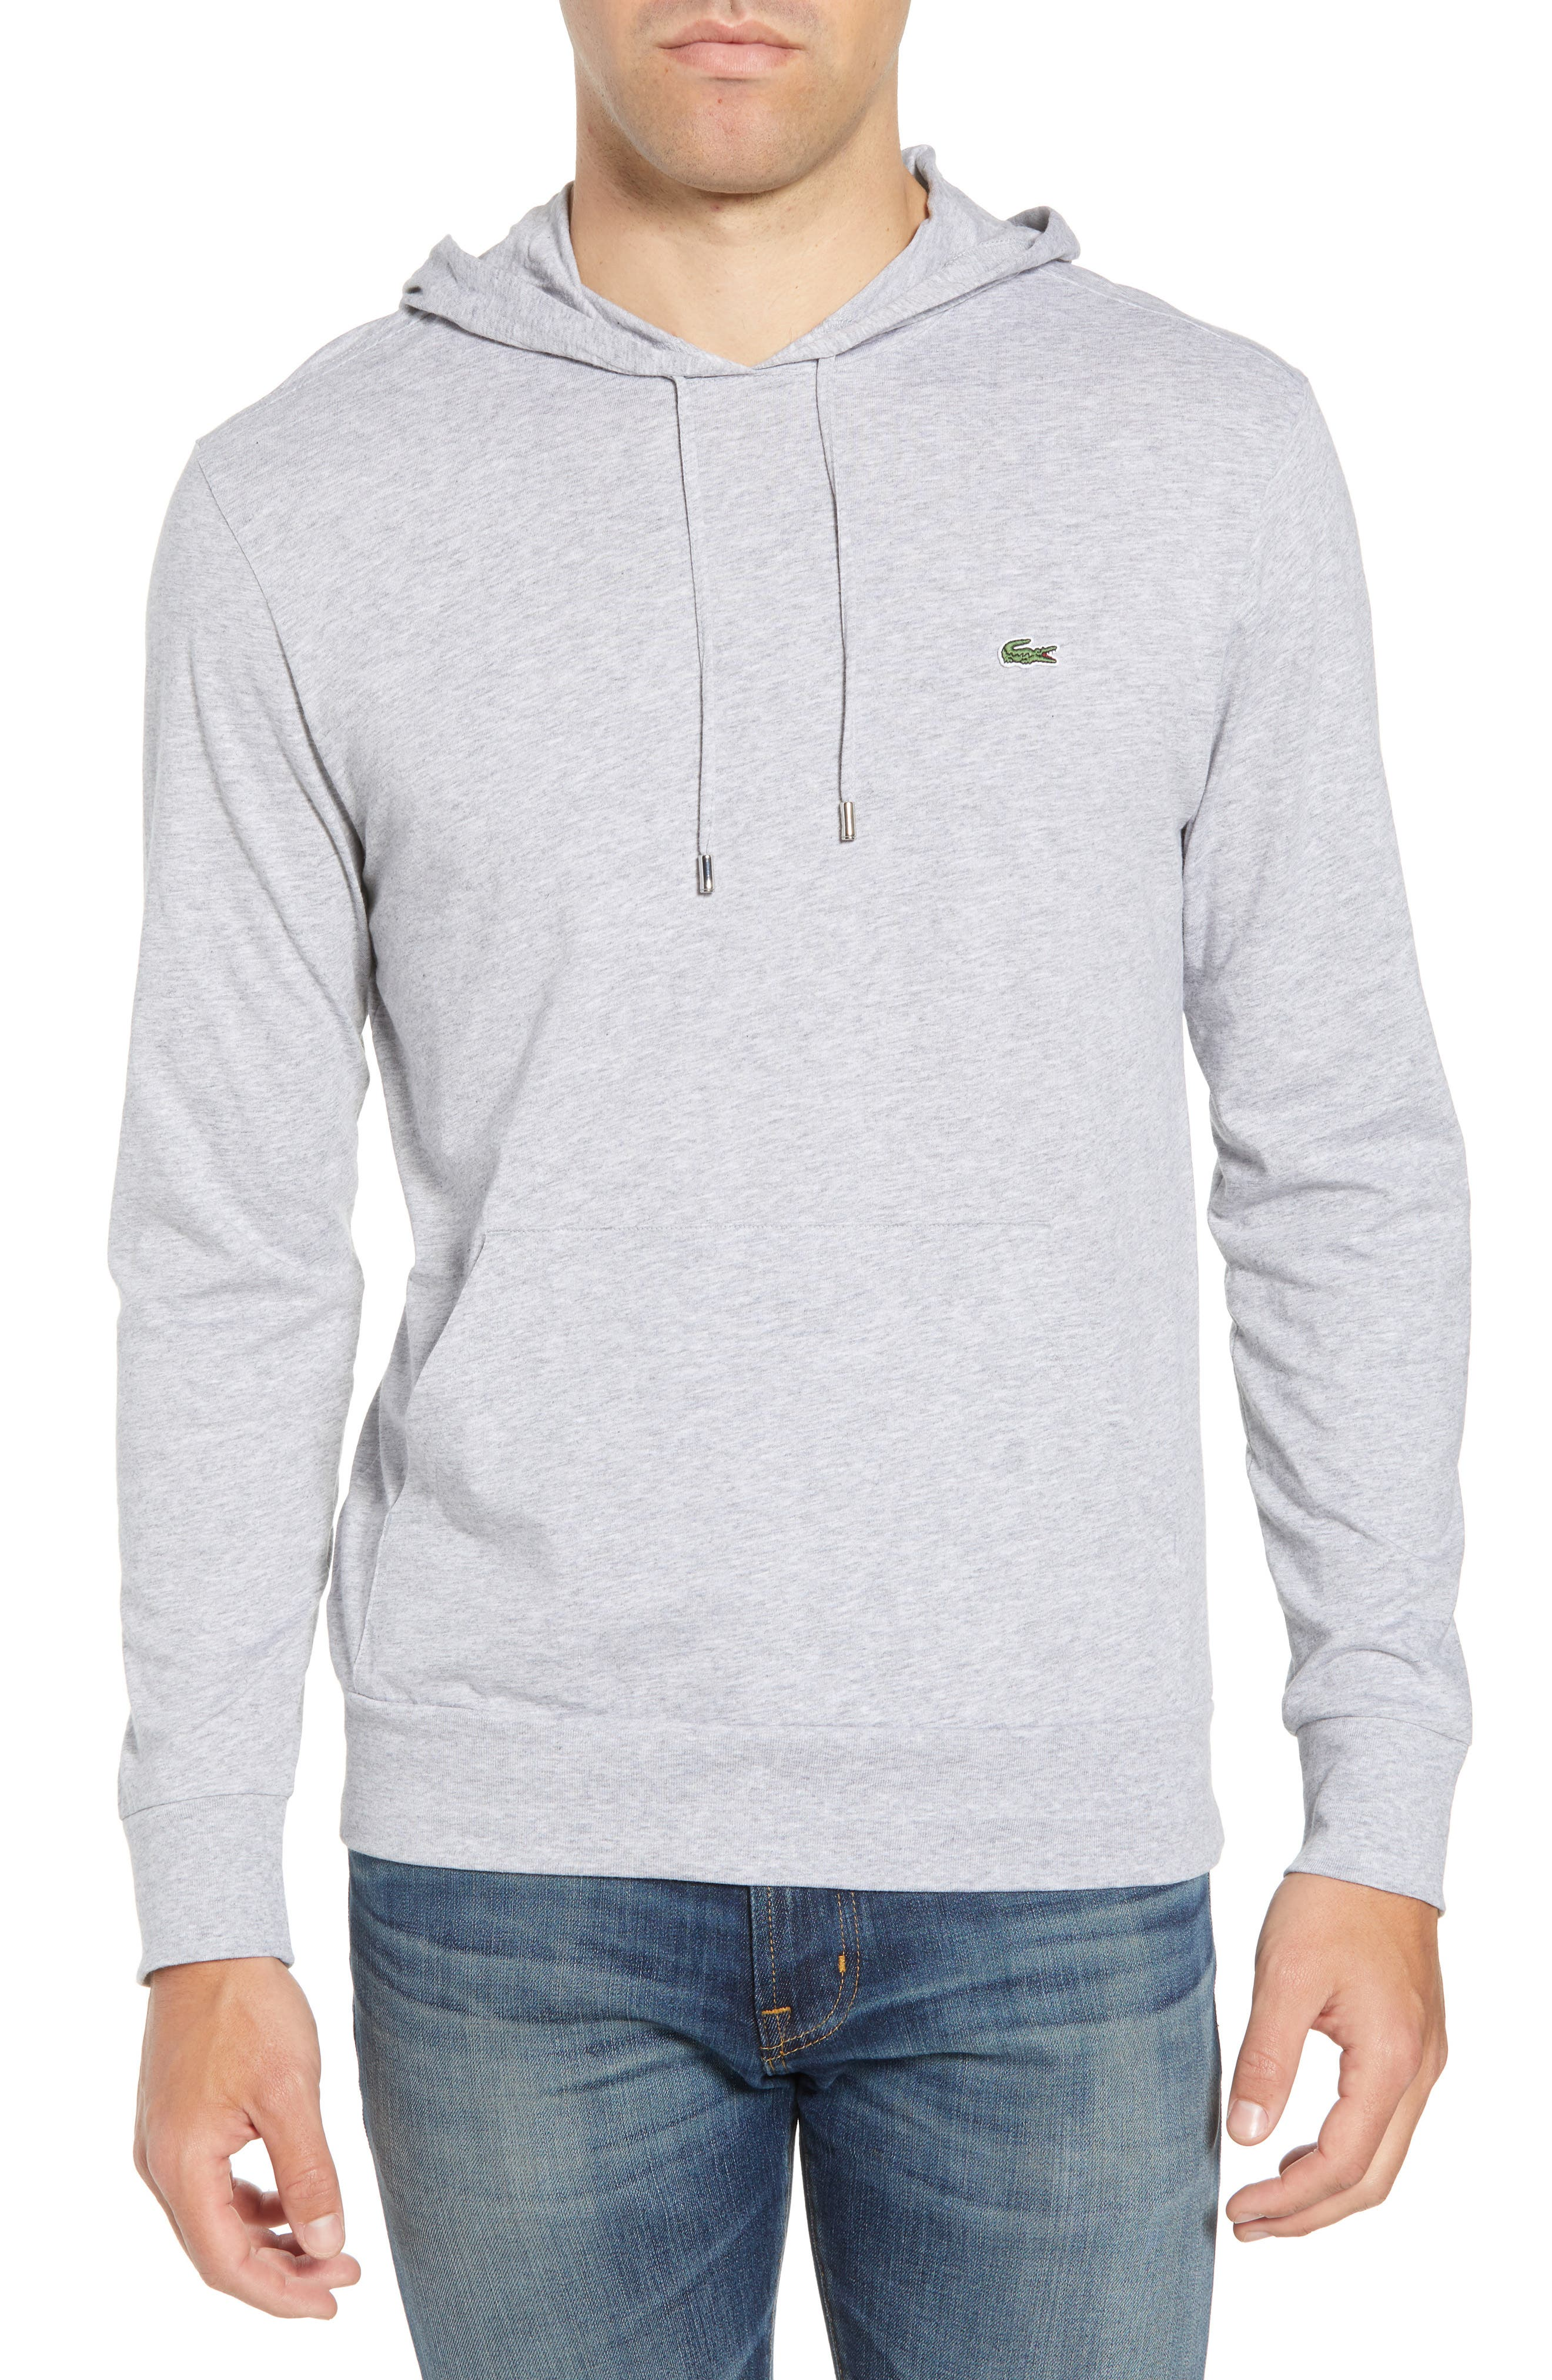 Pullover Hoodie,                             Main thumbnail 1, color,                             SILVER CHINE